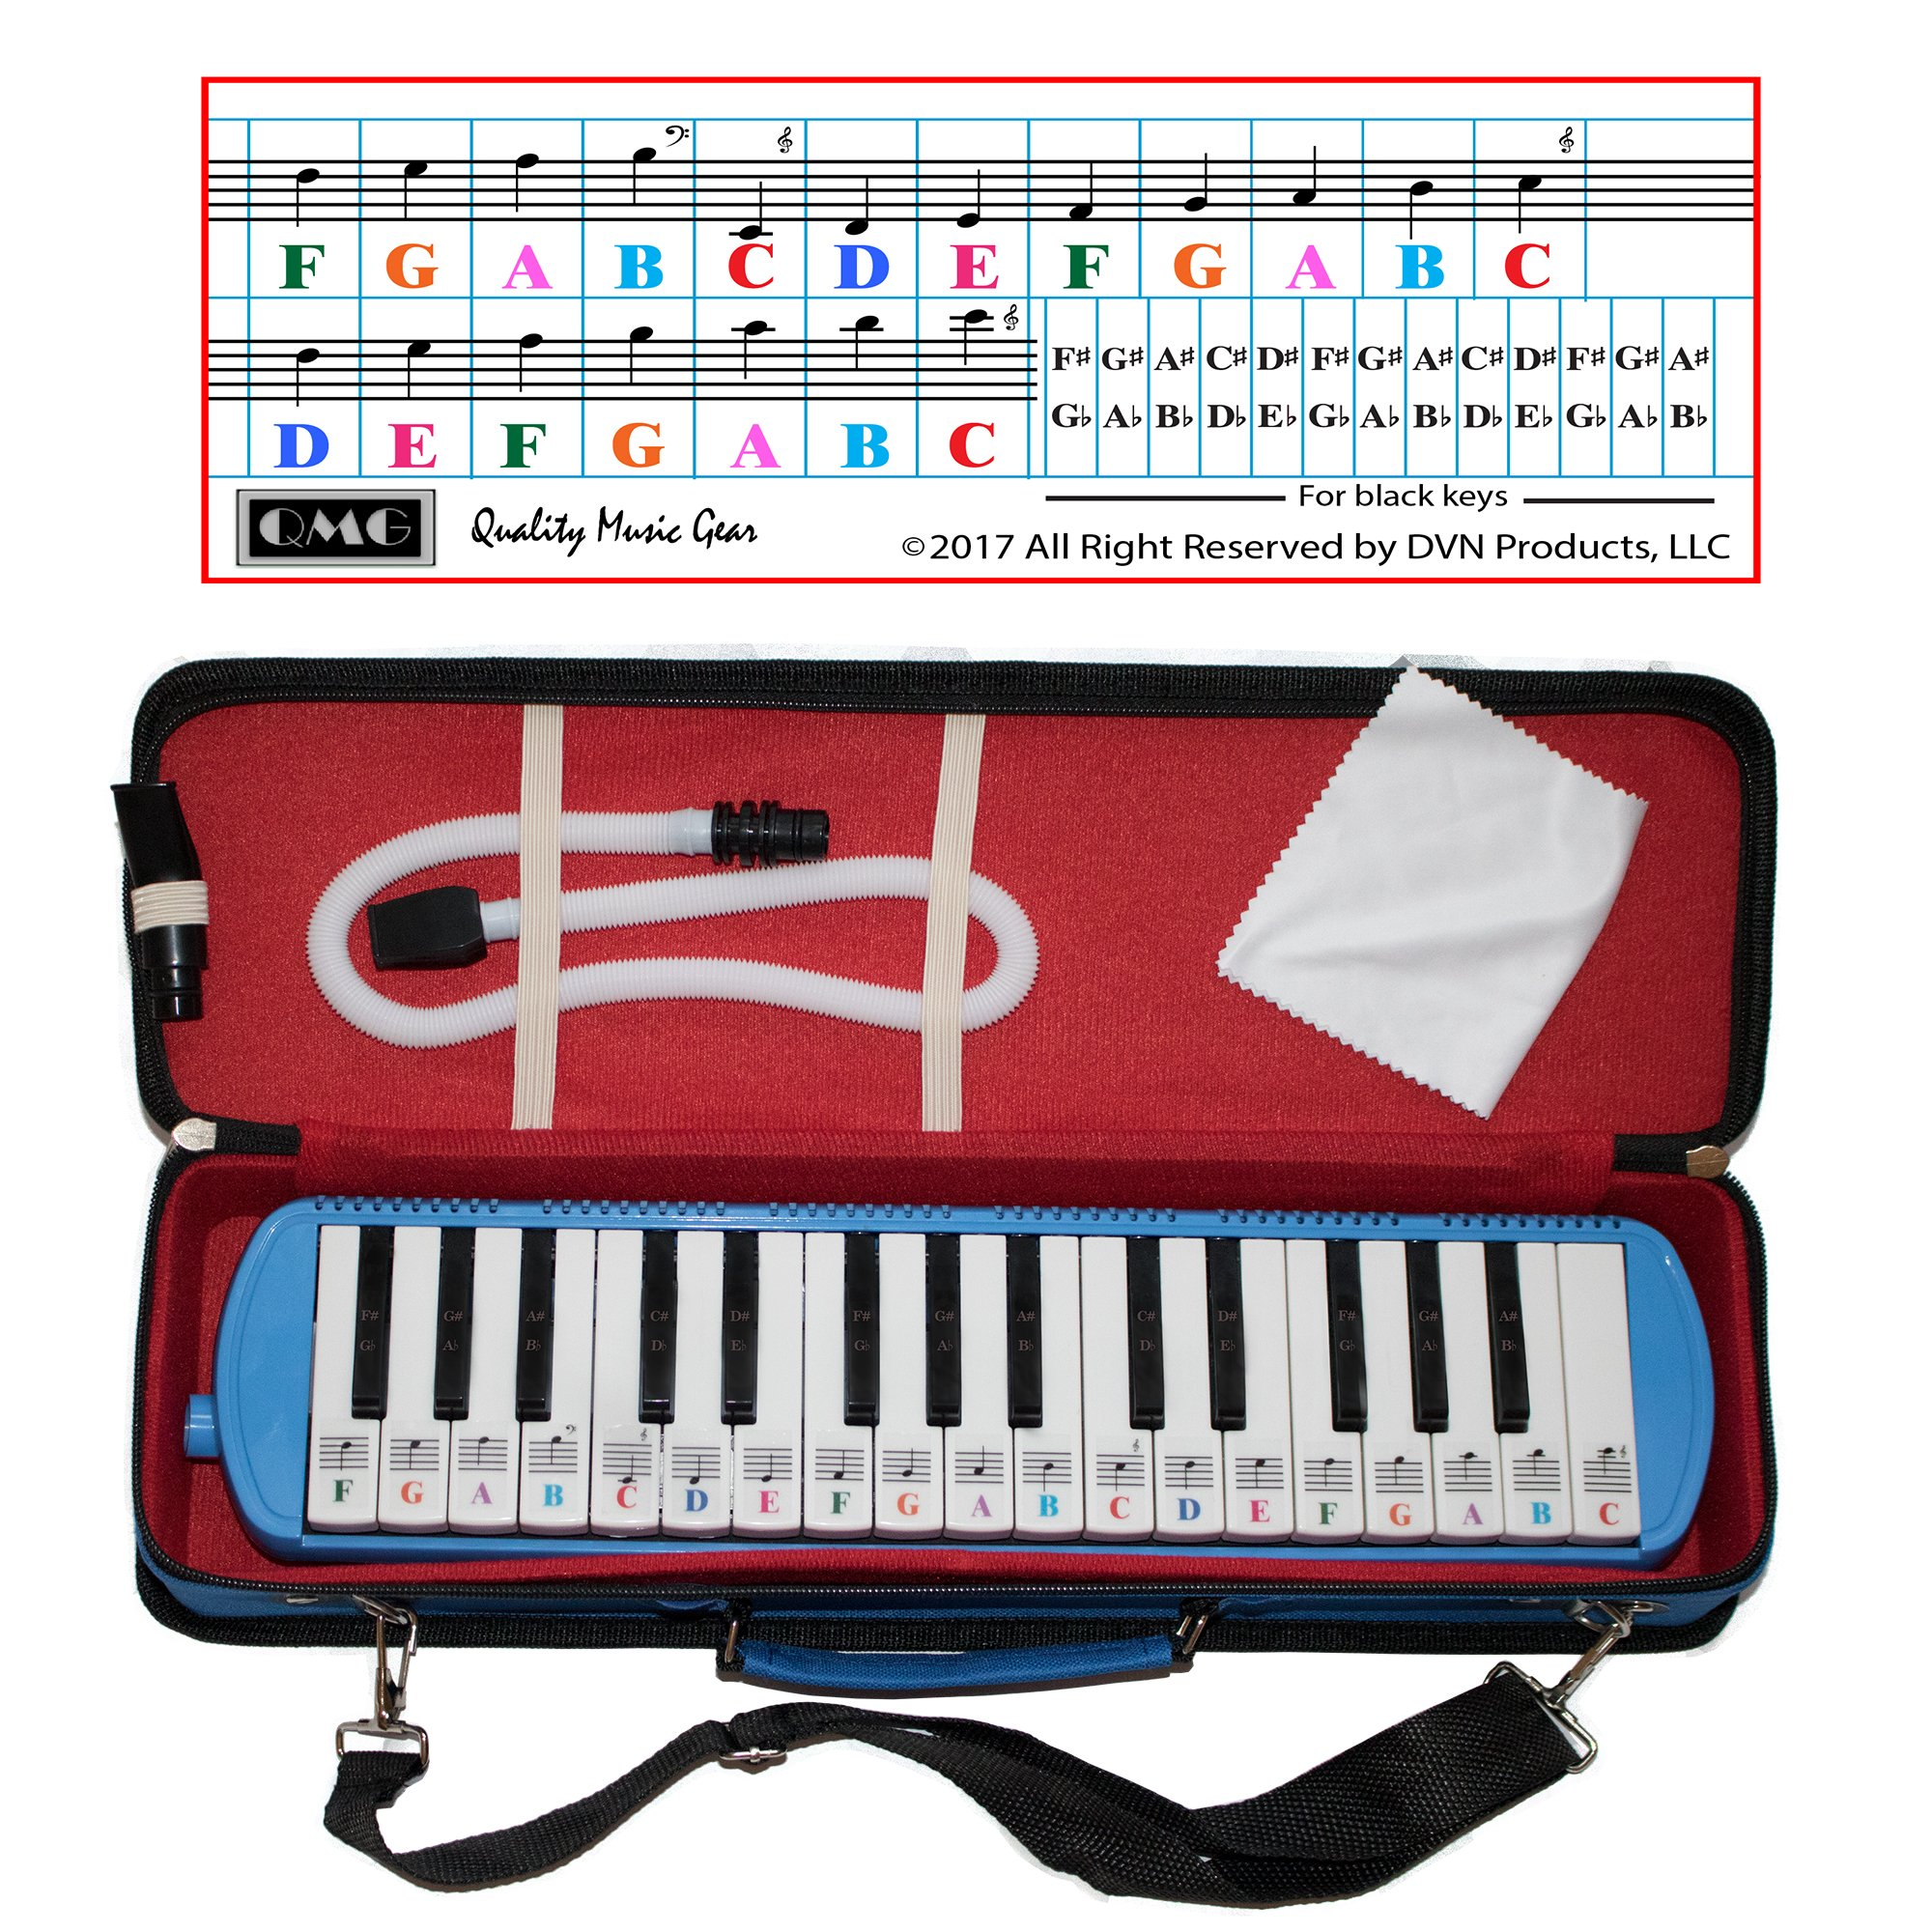 Melodica 32 Keys with Piano Stickers, Hard Cover Carrying Case, Mouthpiece, and Piano Ebook by QMG (Image #1)